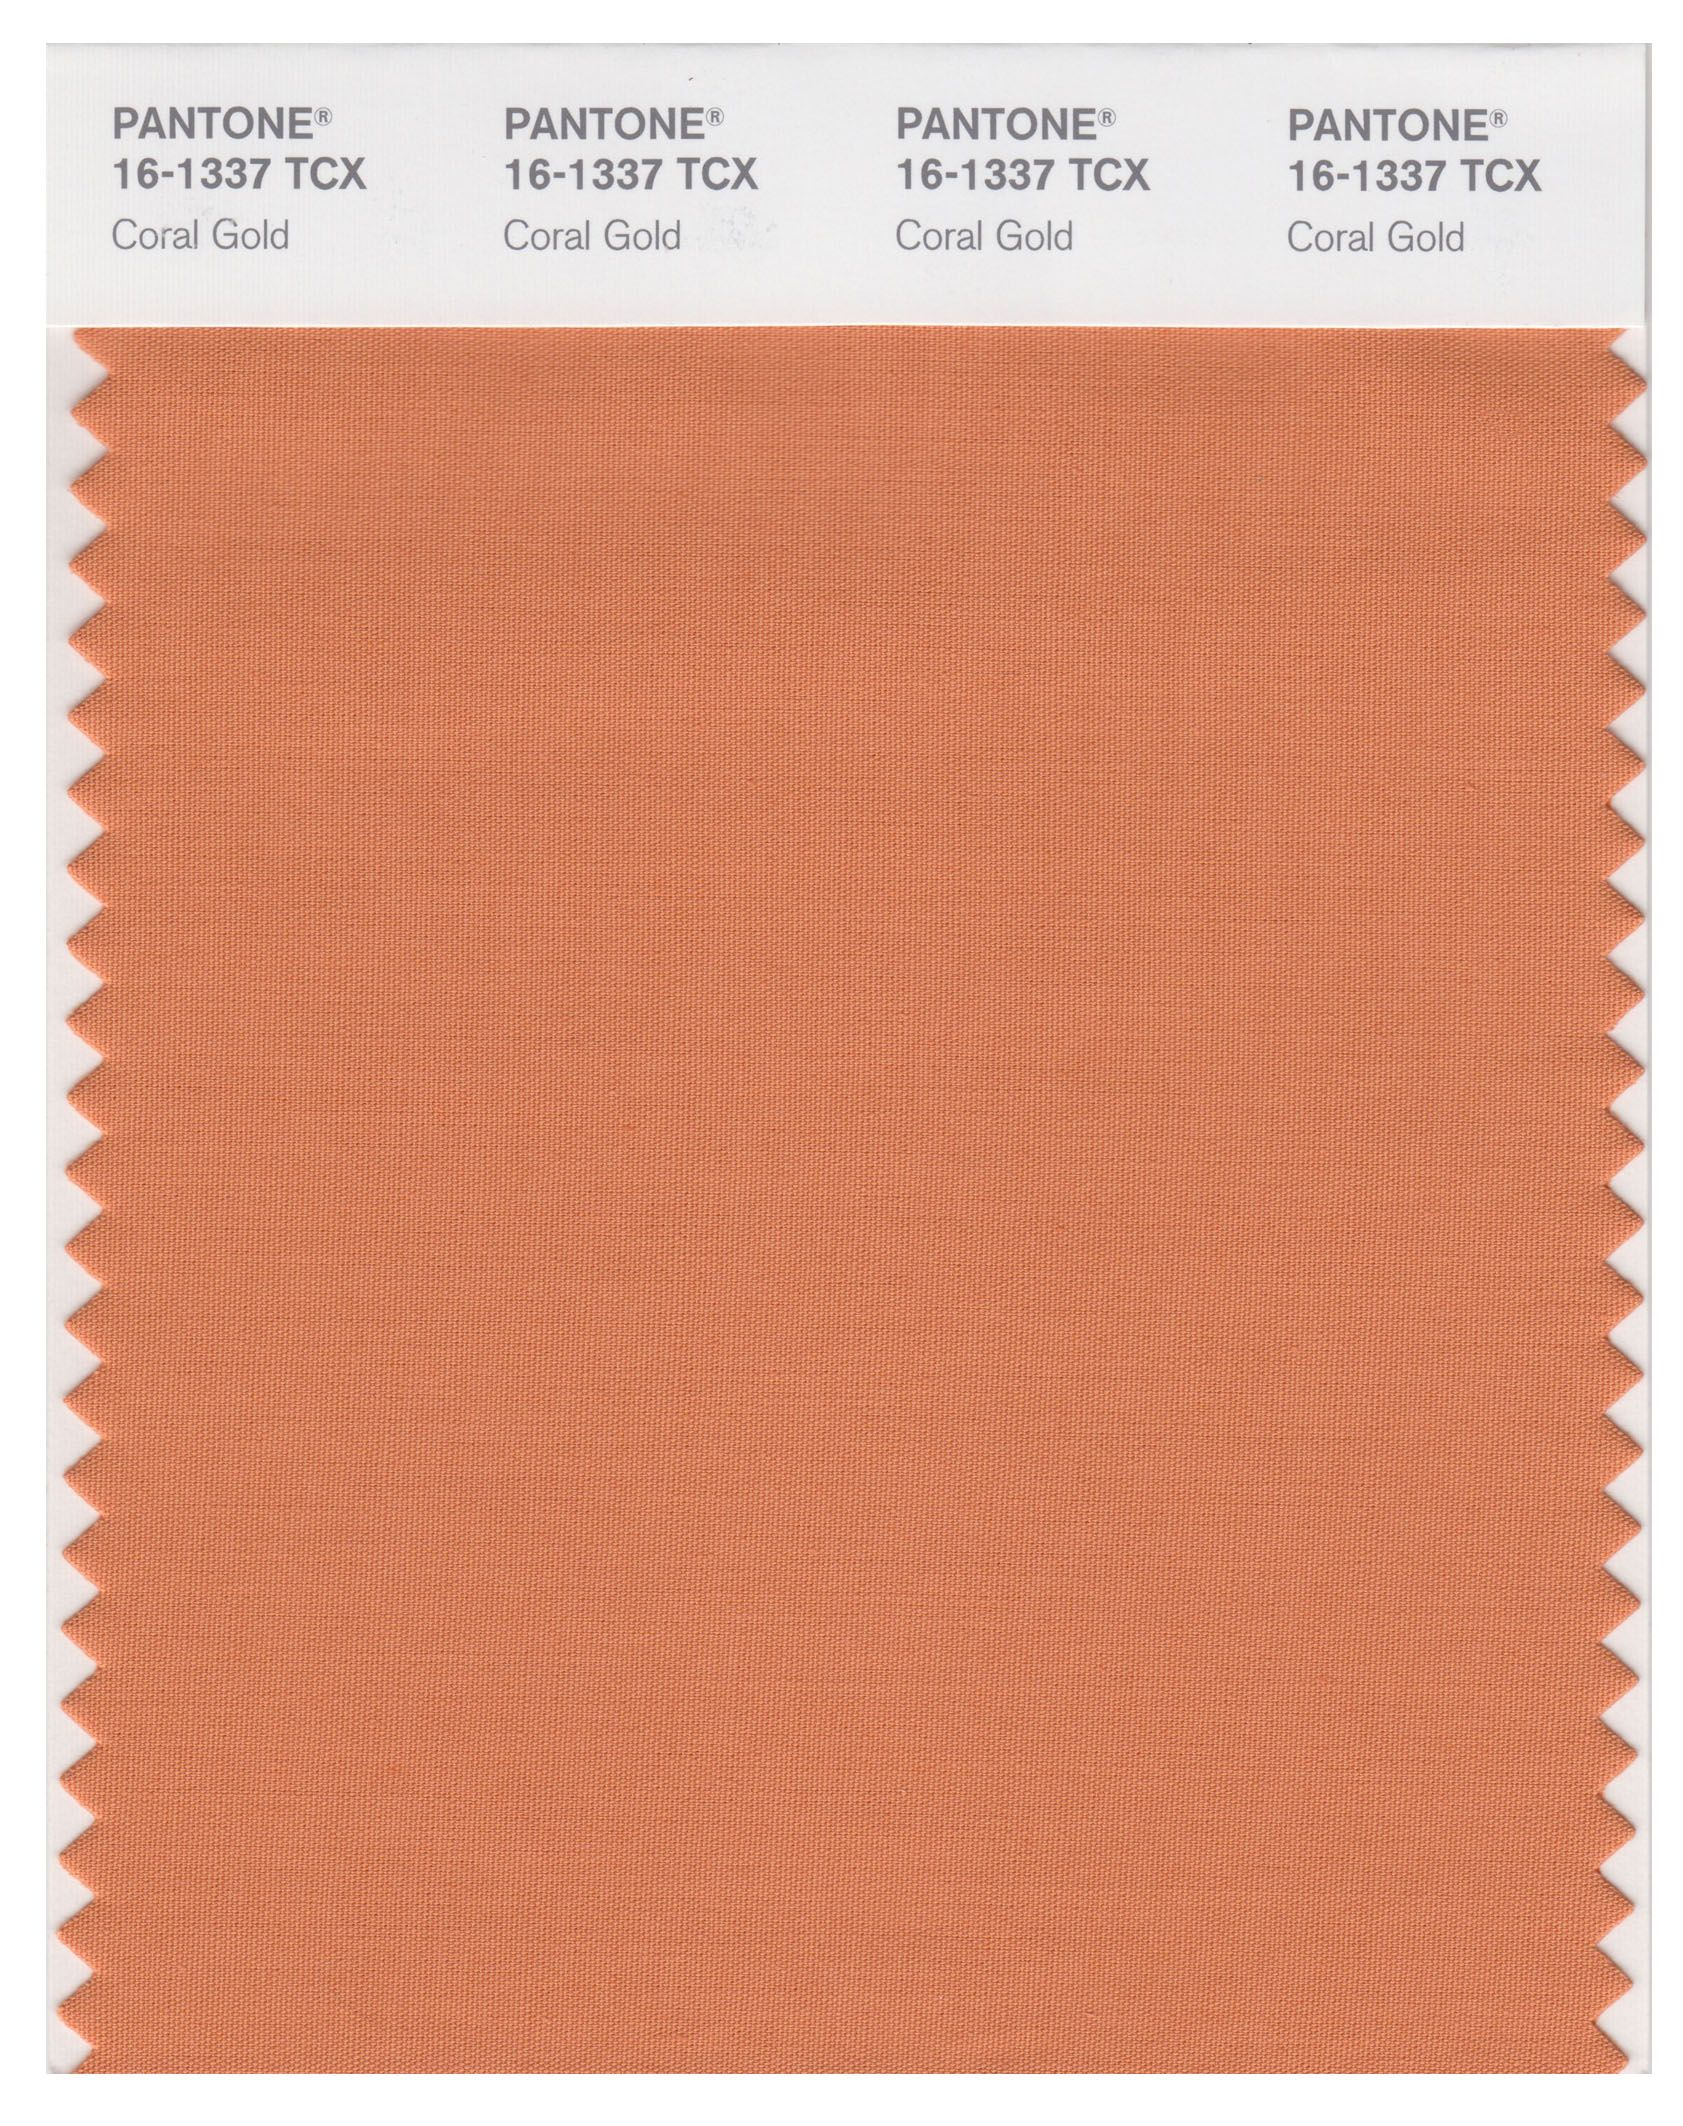 Pantone Smart 16 1337 Tcx Color Swatch Card - Coral Gold